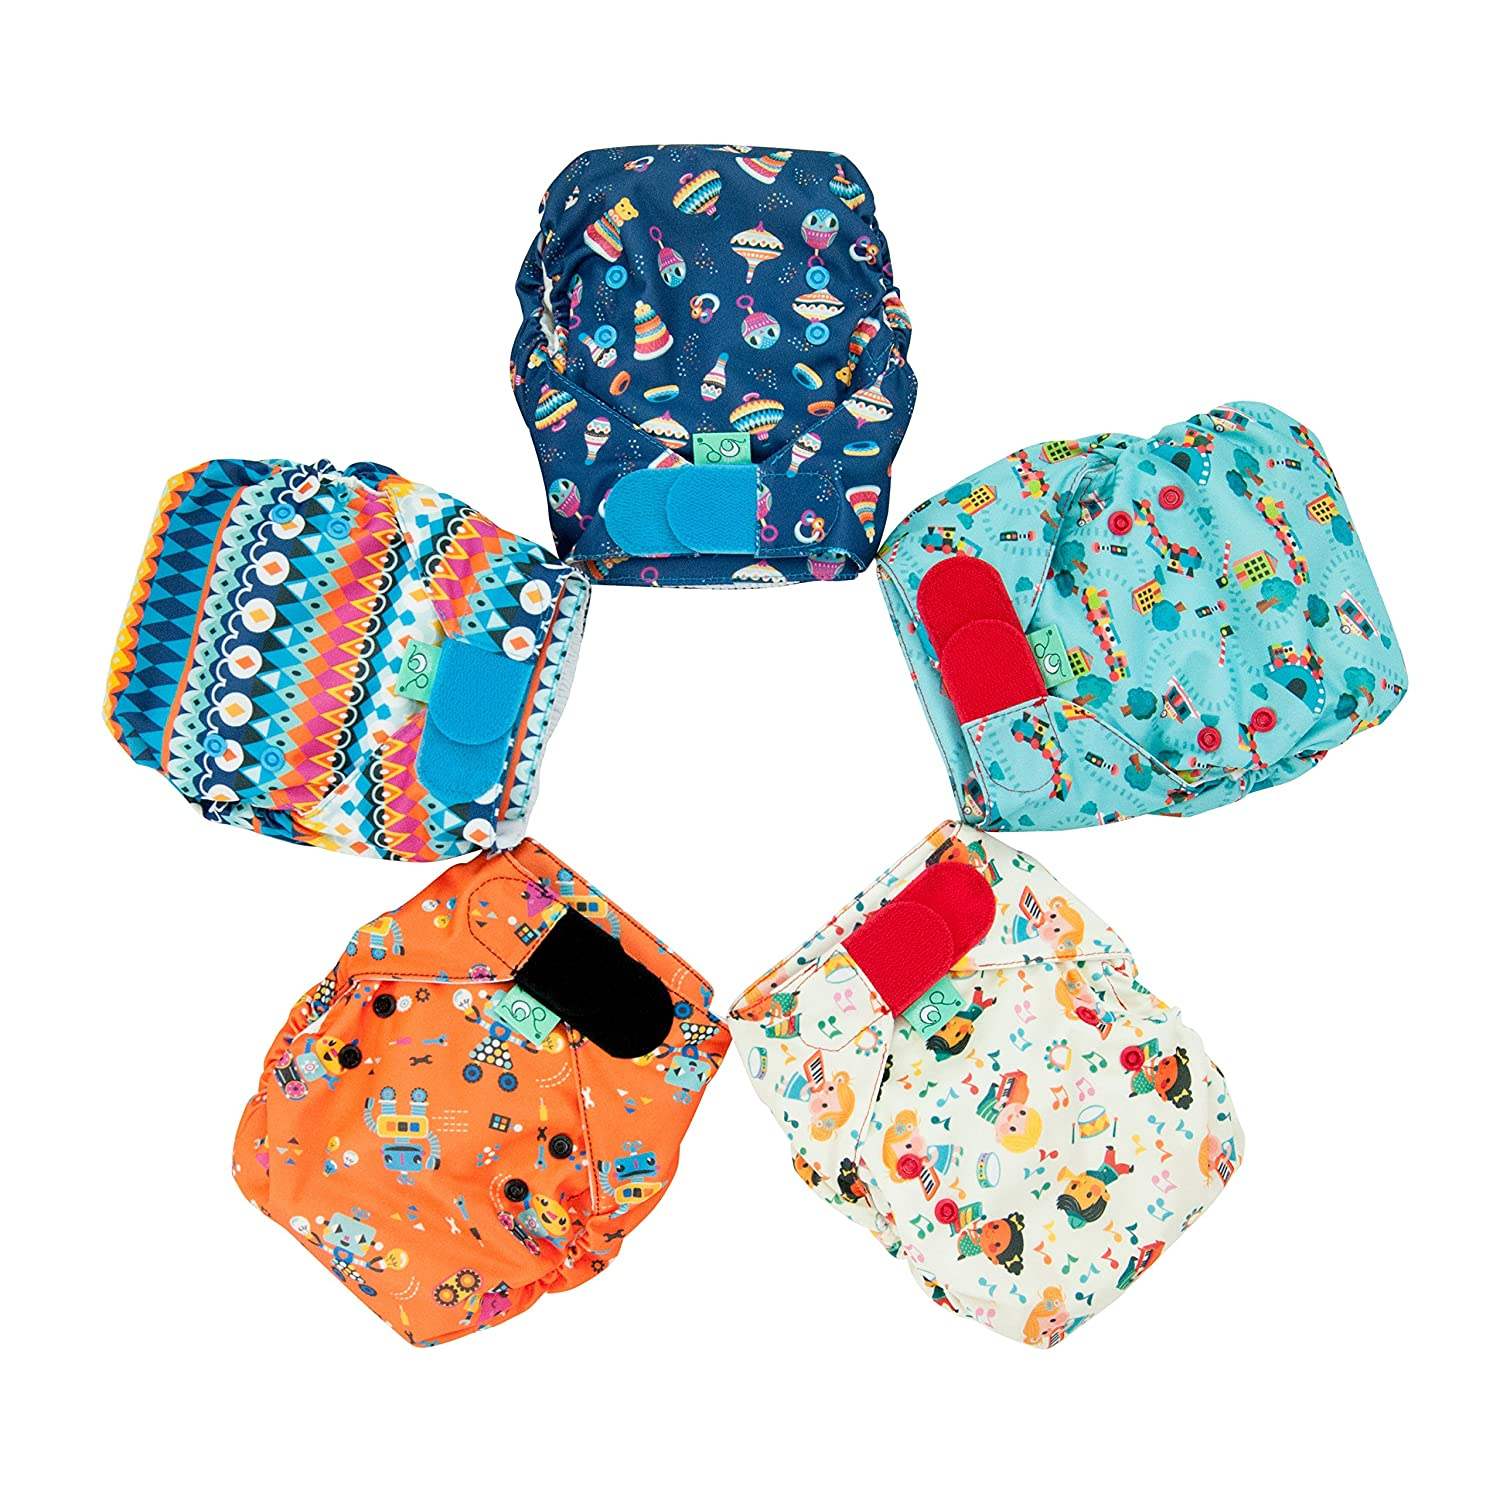 TotsBots Easyfit Star 5 Pack of Print Mix Reusable Washable Nappies Tots Bots Limited 5060510760776